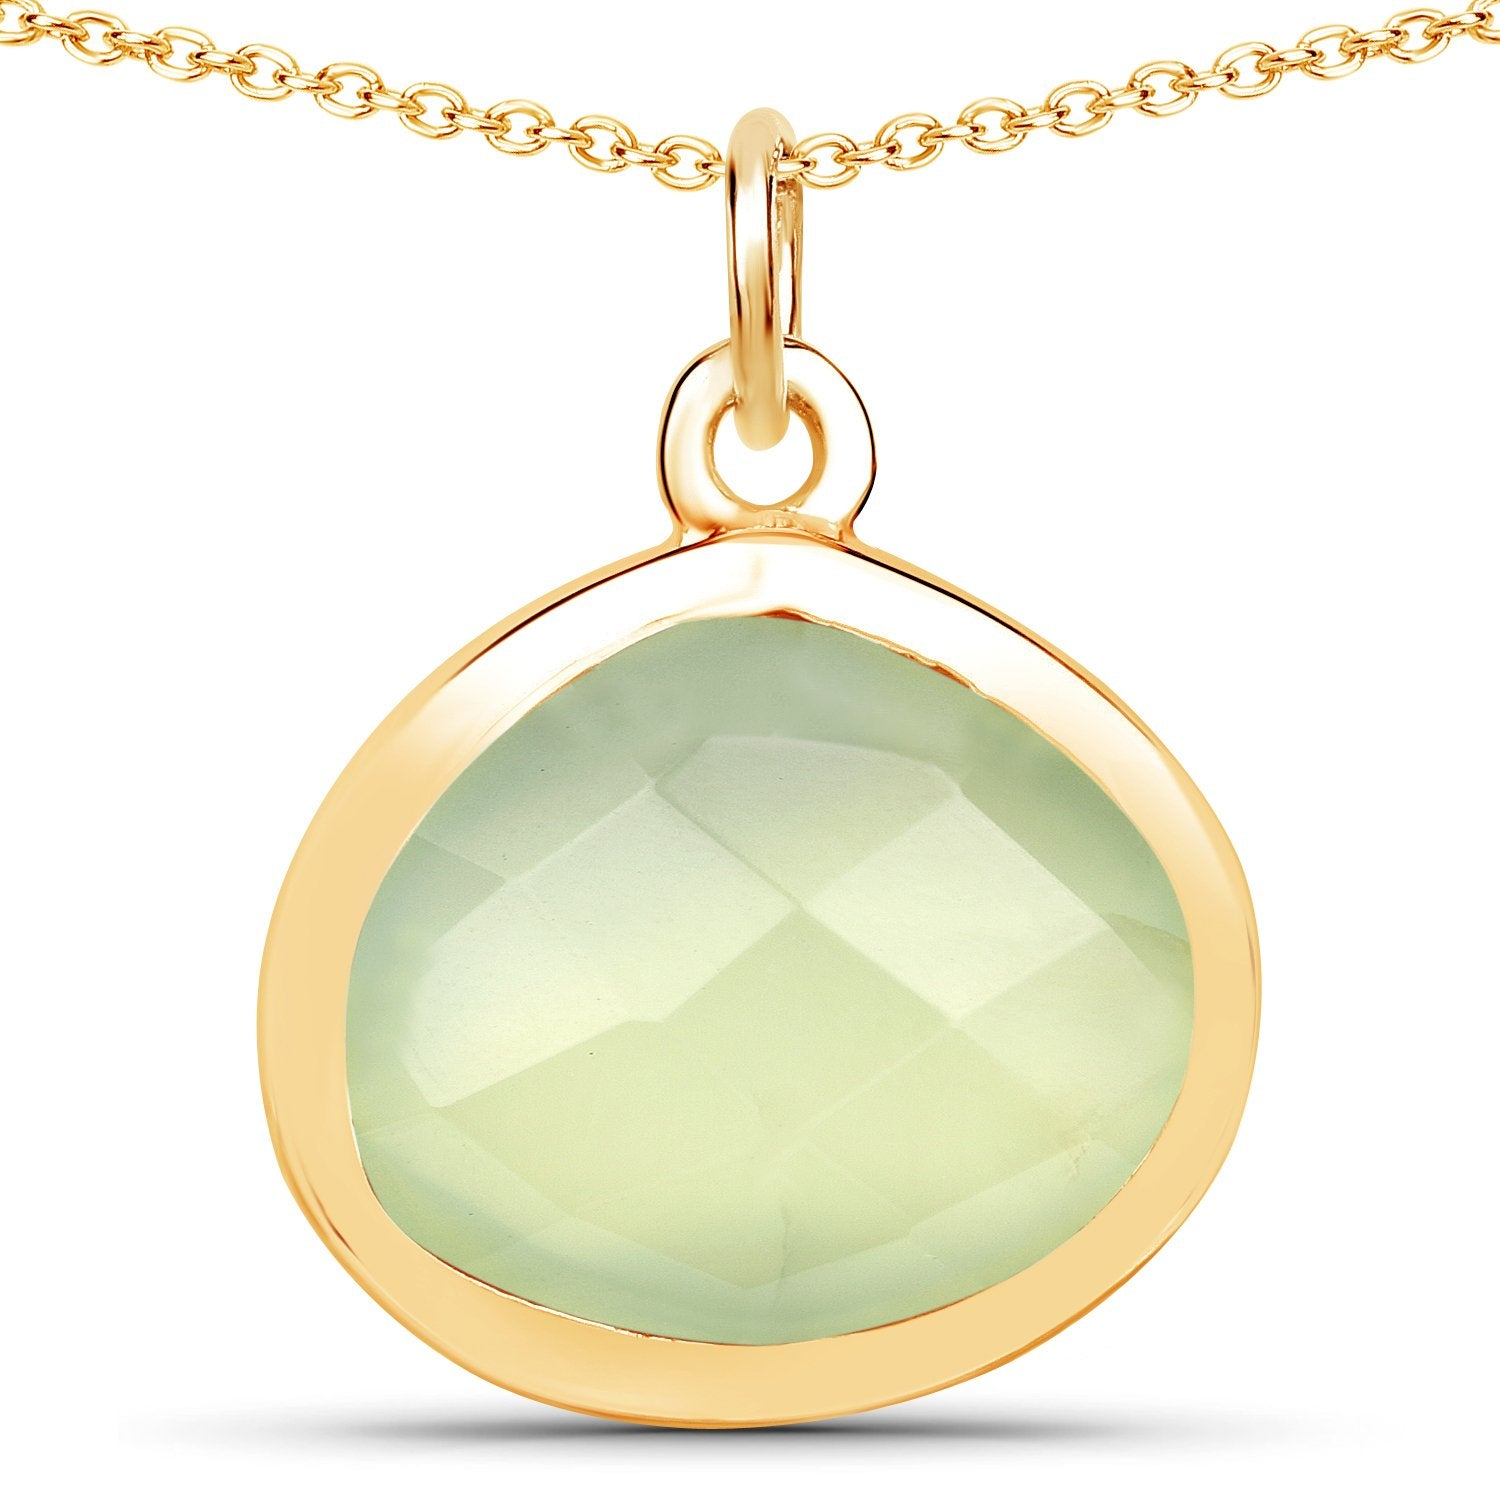 LoveHuang 4.23 Carats Genuine Prehnite Rose Cut Drop Pendant Solid .925 Sterling Silver With 18KT Yellow Gold Plating, 18 Inch Chain